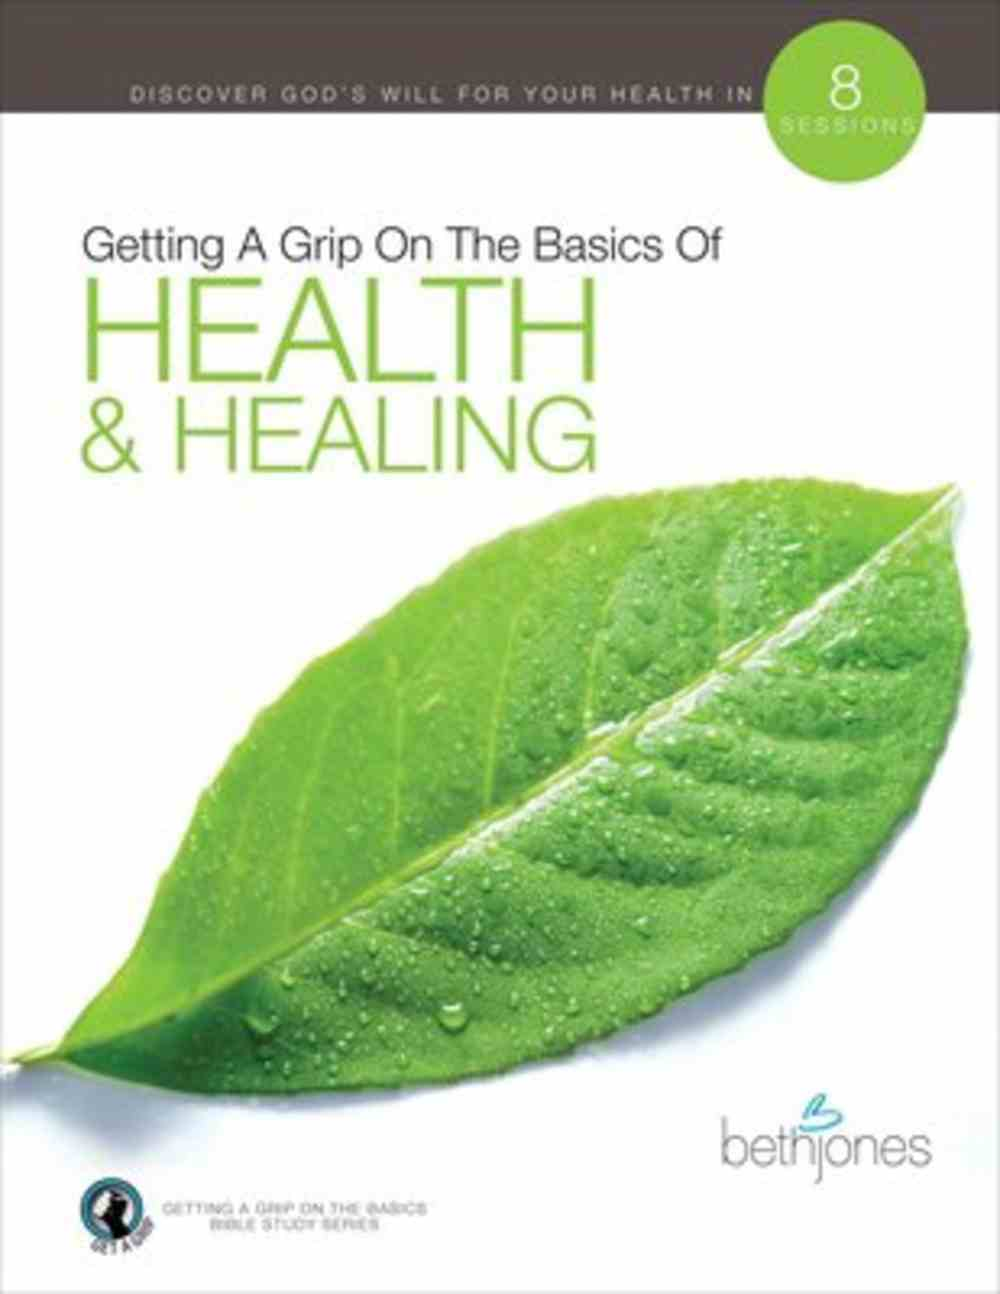 Health & Healing (8 Sessions) (Getting A Grip On The Bsaics Series) Paperback